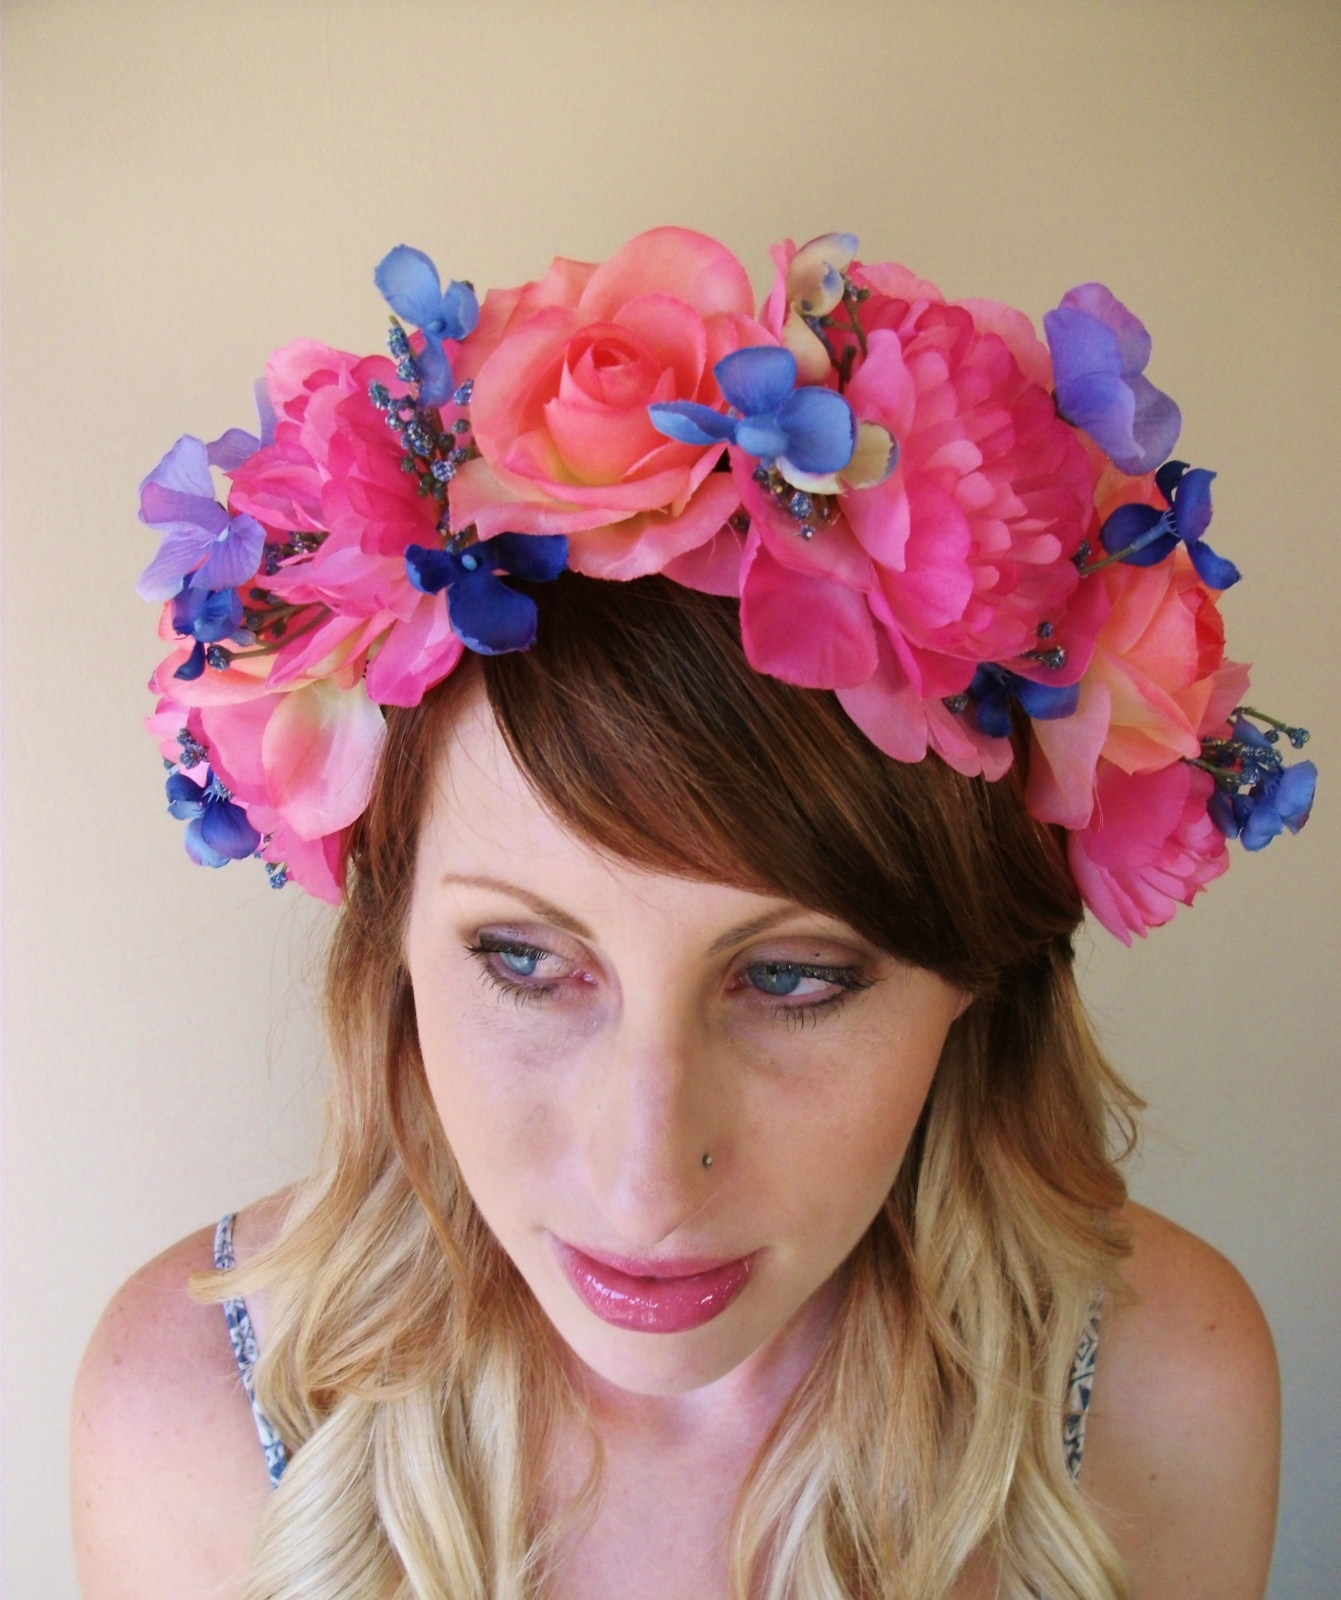 Peony Rose Hydrangeas Crown Floral Wreath Flower Crown Floral Crown Flora